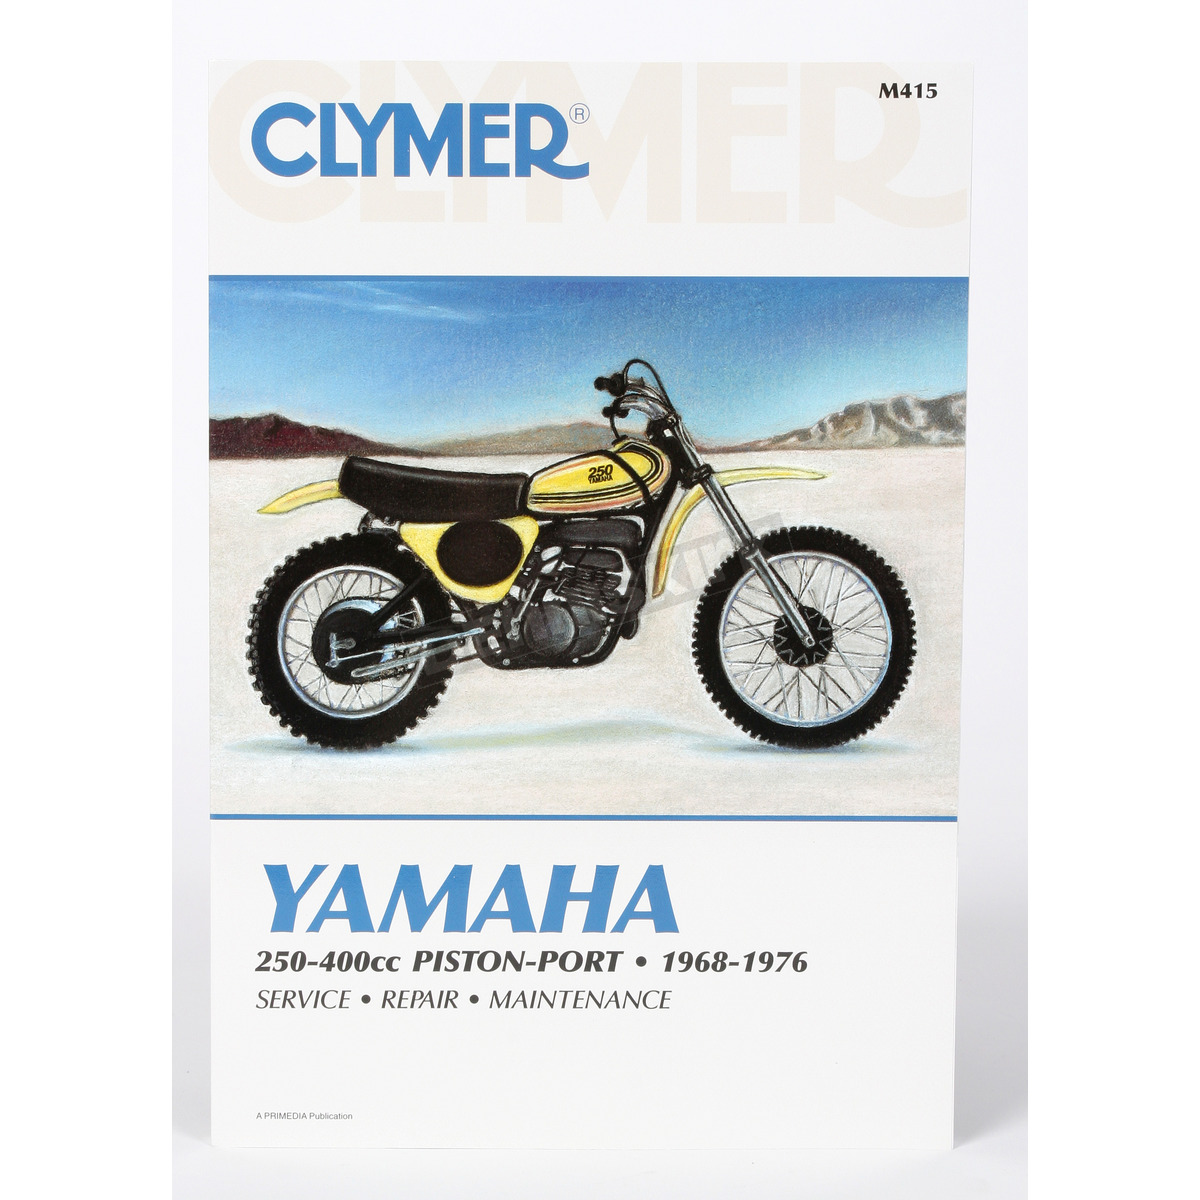 Clymer Yamaha Repair Manual - M415